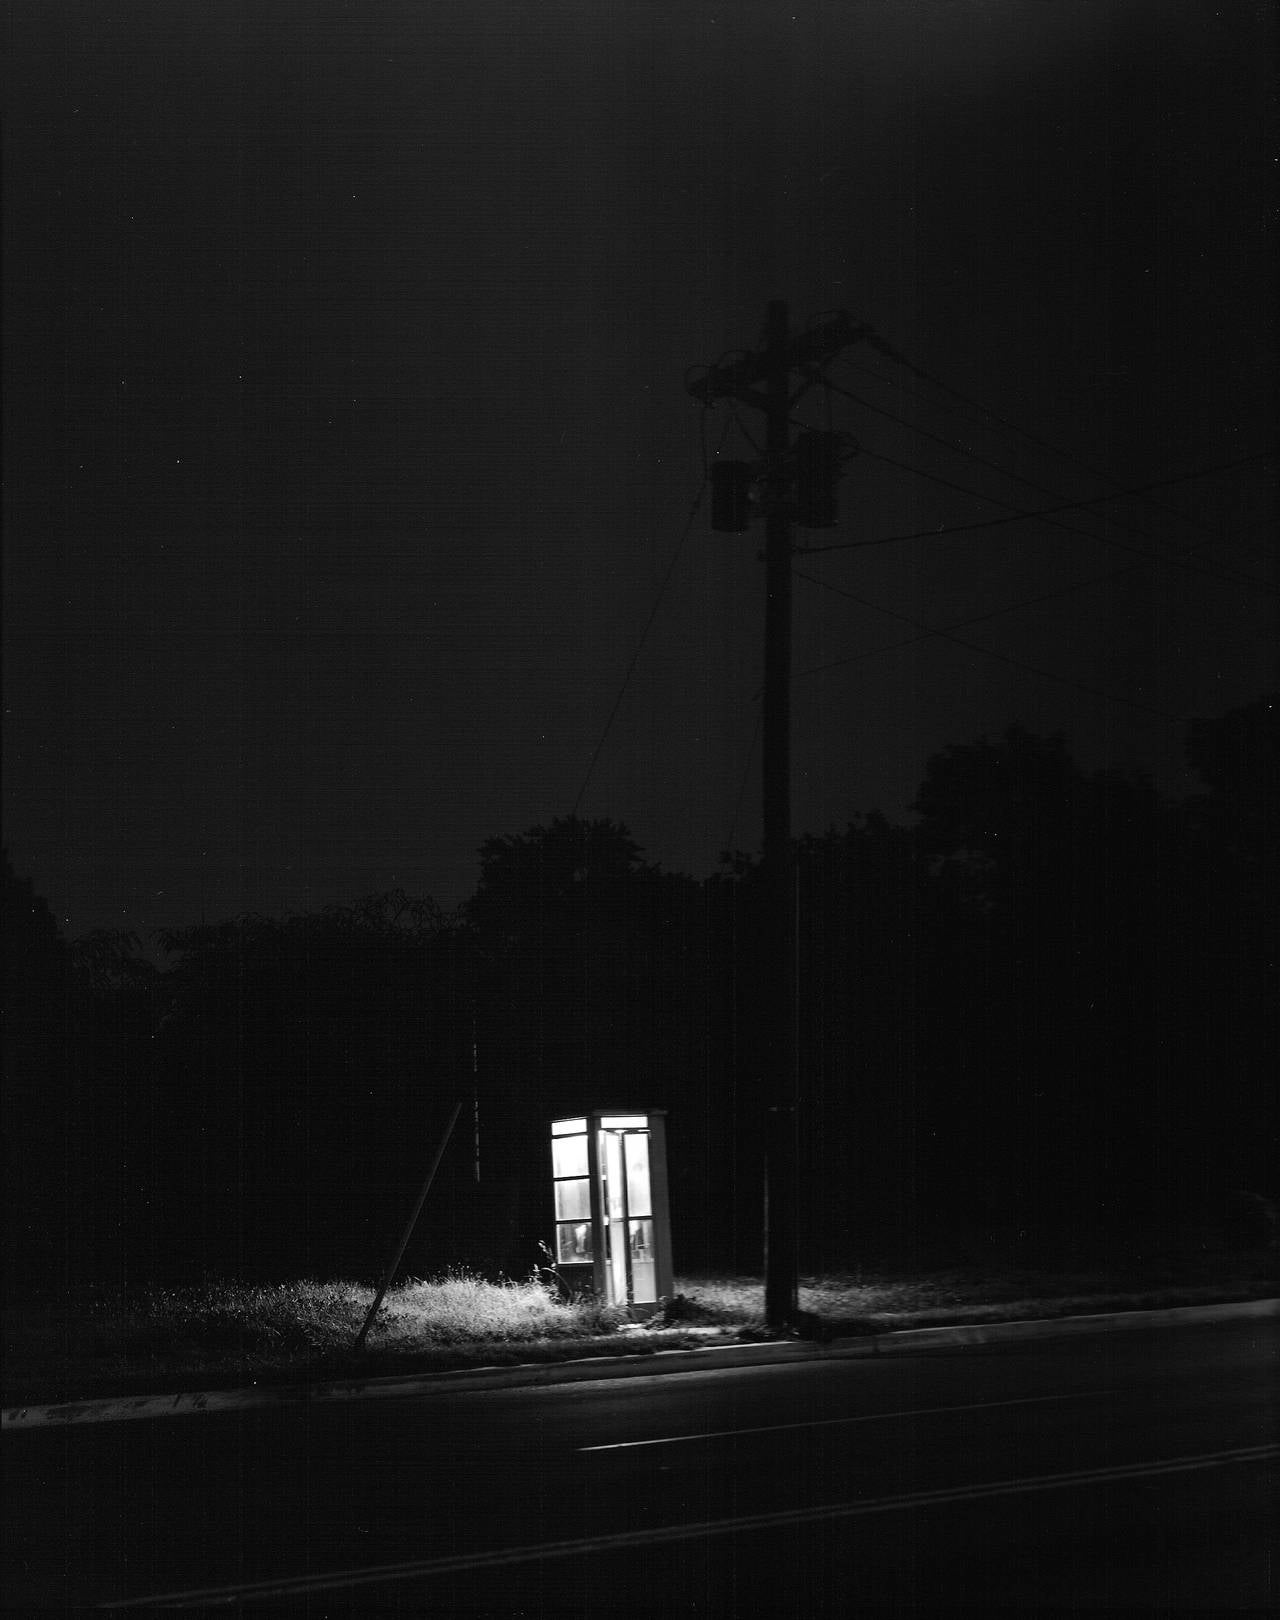 George Tice Telephone Booth 3 AM Rahway NJ Photograph For Sale At 1stdibs